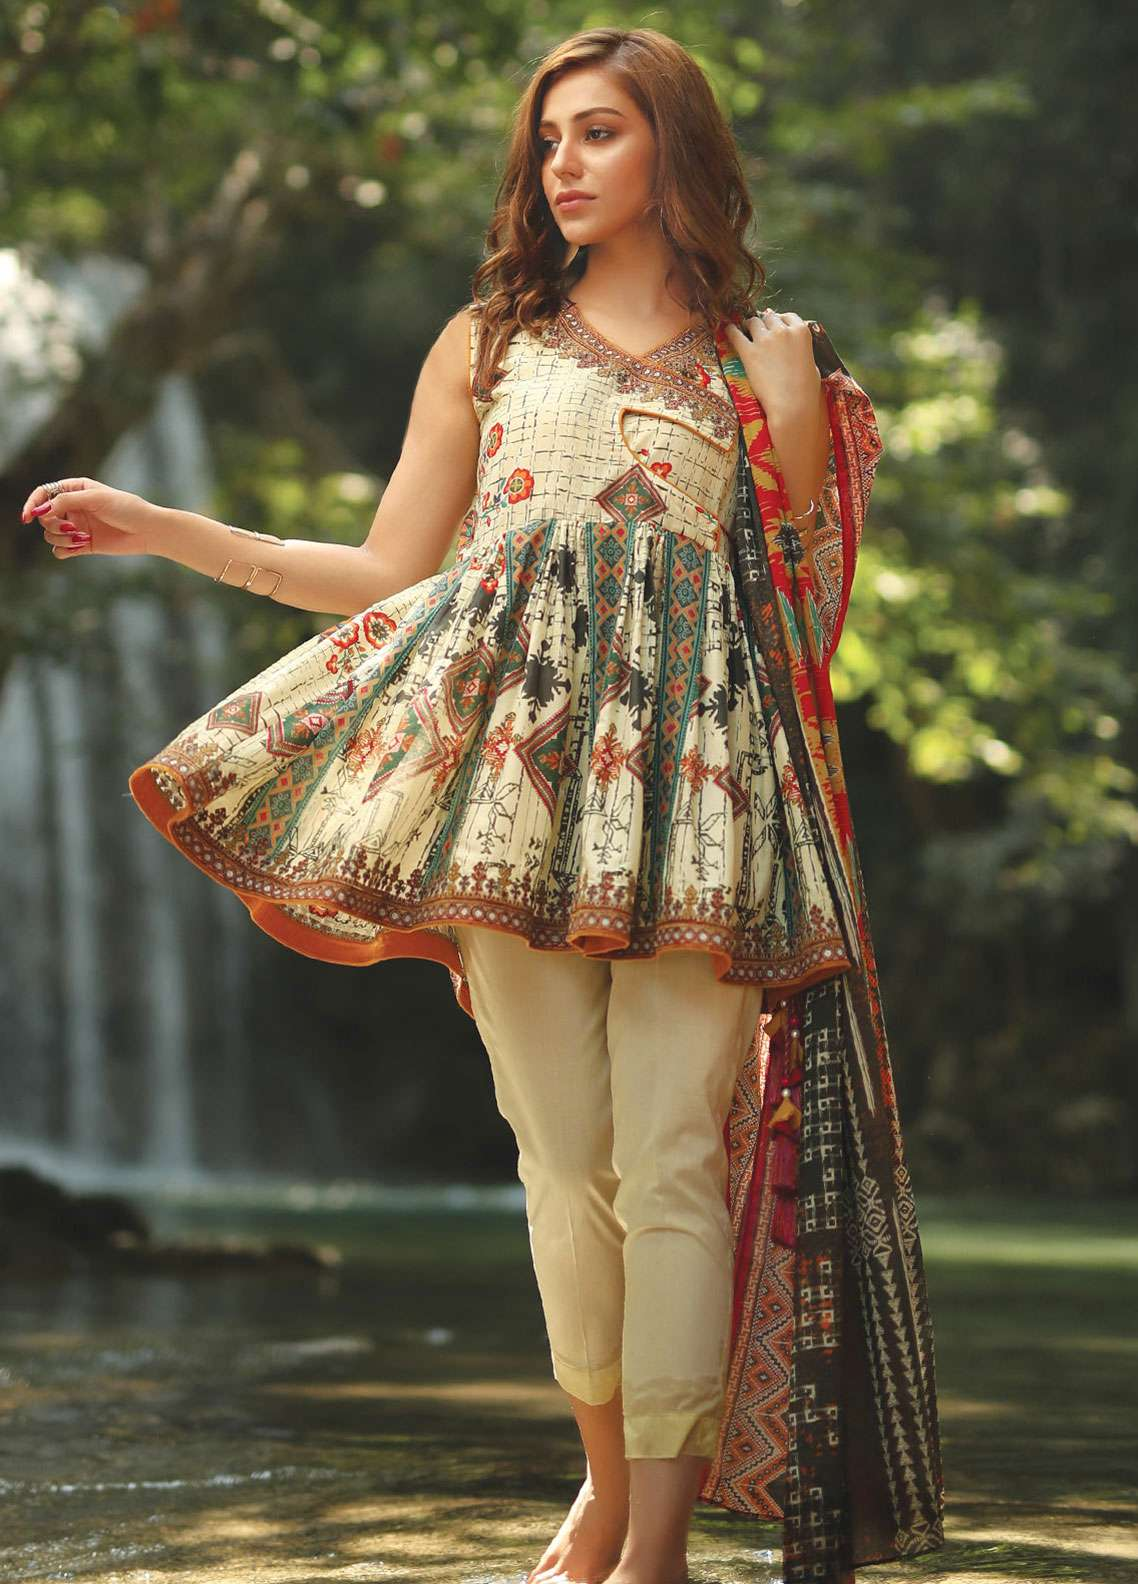 Edenrobe Embroidered Lawn Unstitched 2 Piece Suit 019587 - Spring / Summer Collection